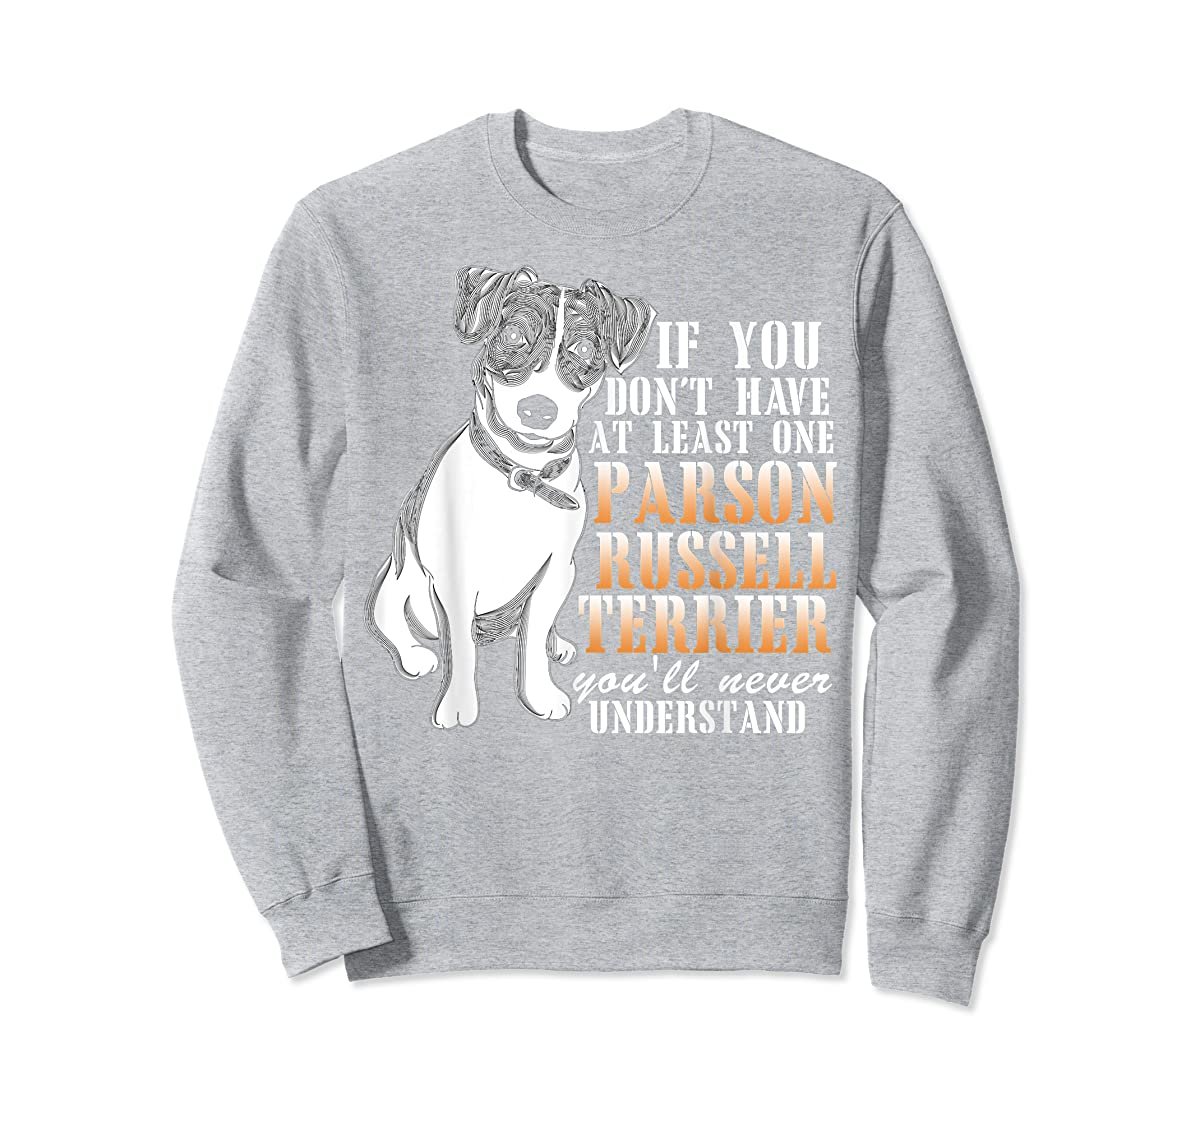 Parson Russell Terrier T Shirt, I Love My Dog T Shirt-Sweatshirt-Sport Grey